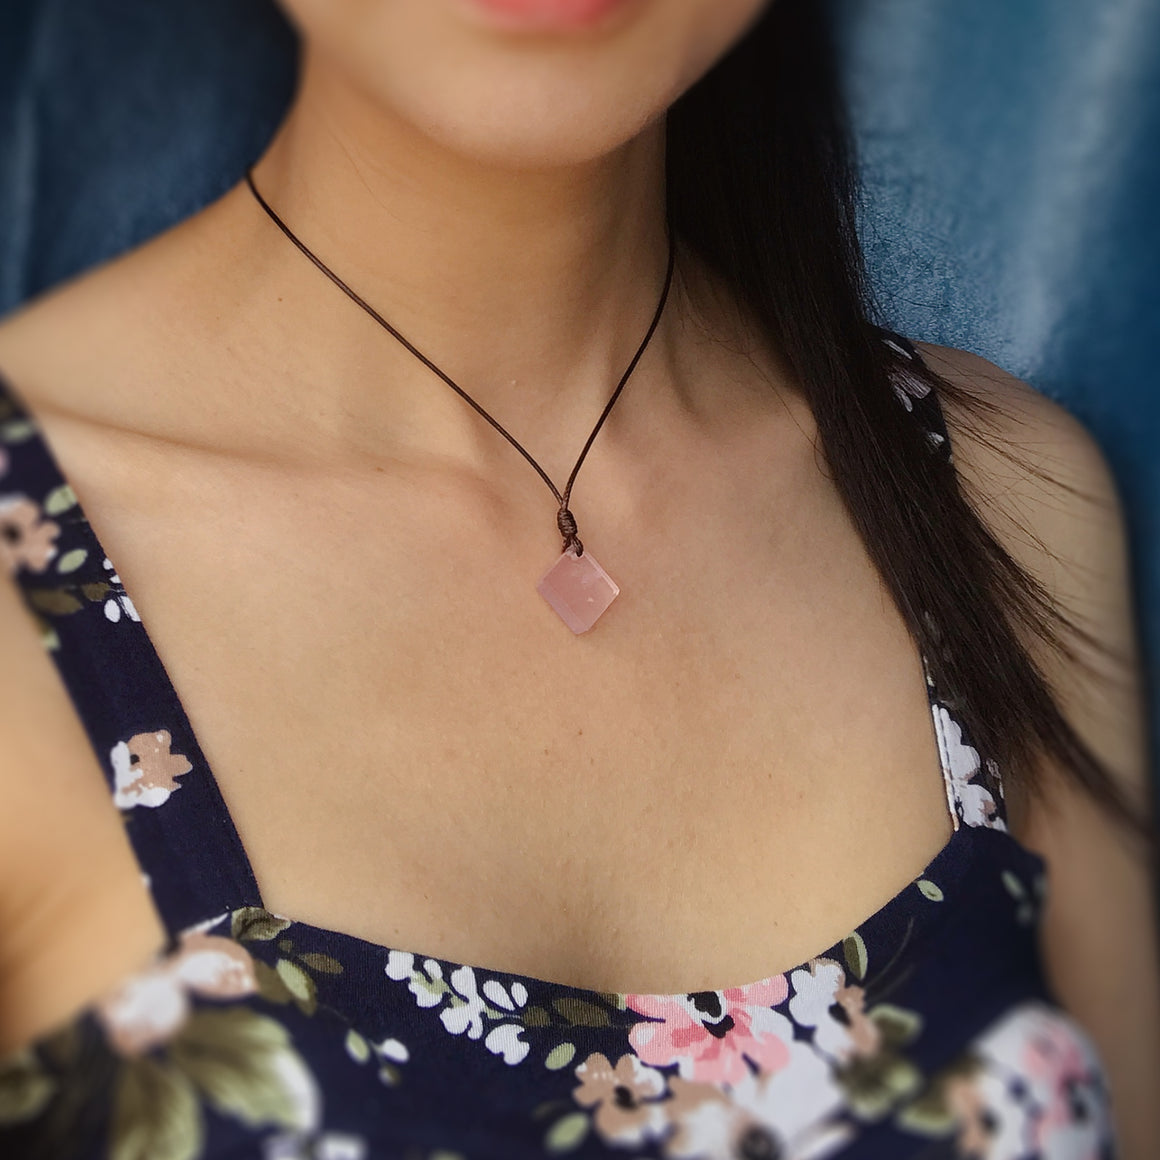 Modern Pink Rose Quartz Diamond Pendant Necklace | Heart Chakra Healing | Powerful Self-Love Affirmations | Essential Jewelry for Rebuilding Trust and Compassion